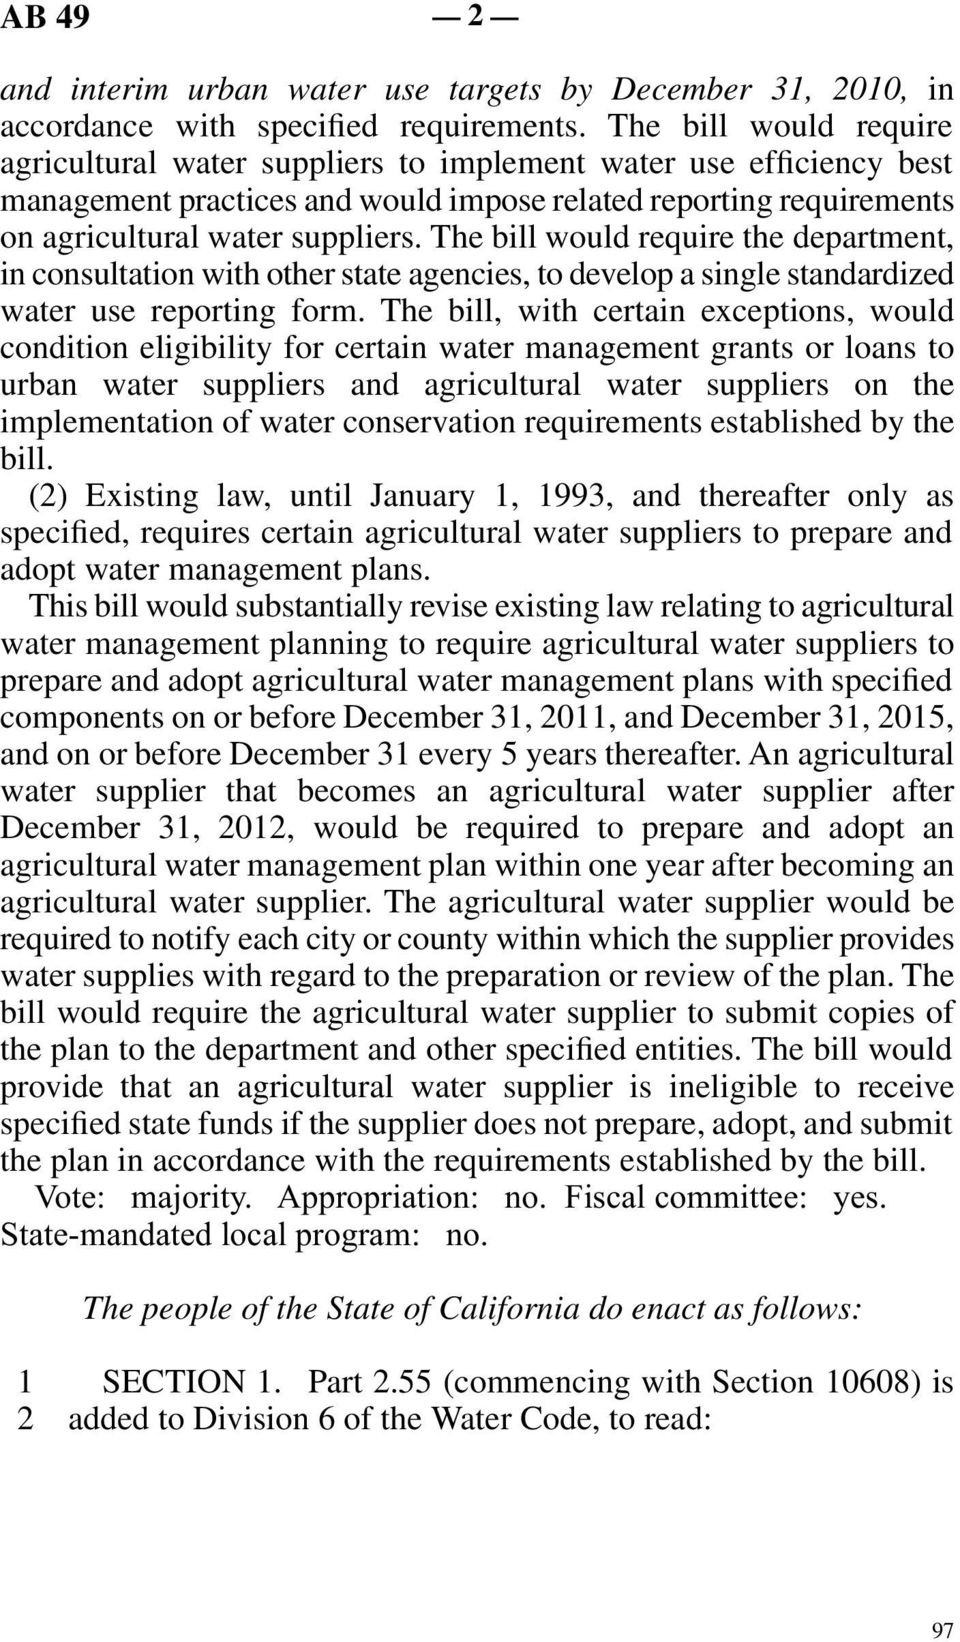 The bill would require the department, in consultation with other state agencies, to develop a single standardized water use reporting form.